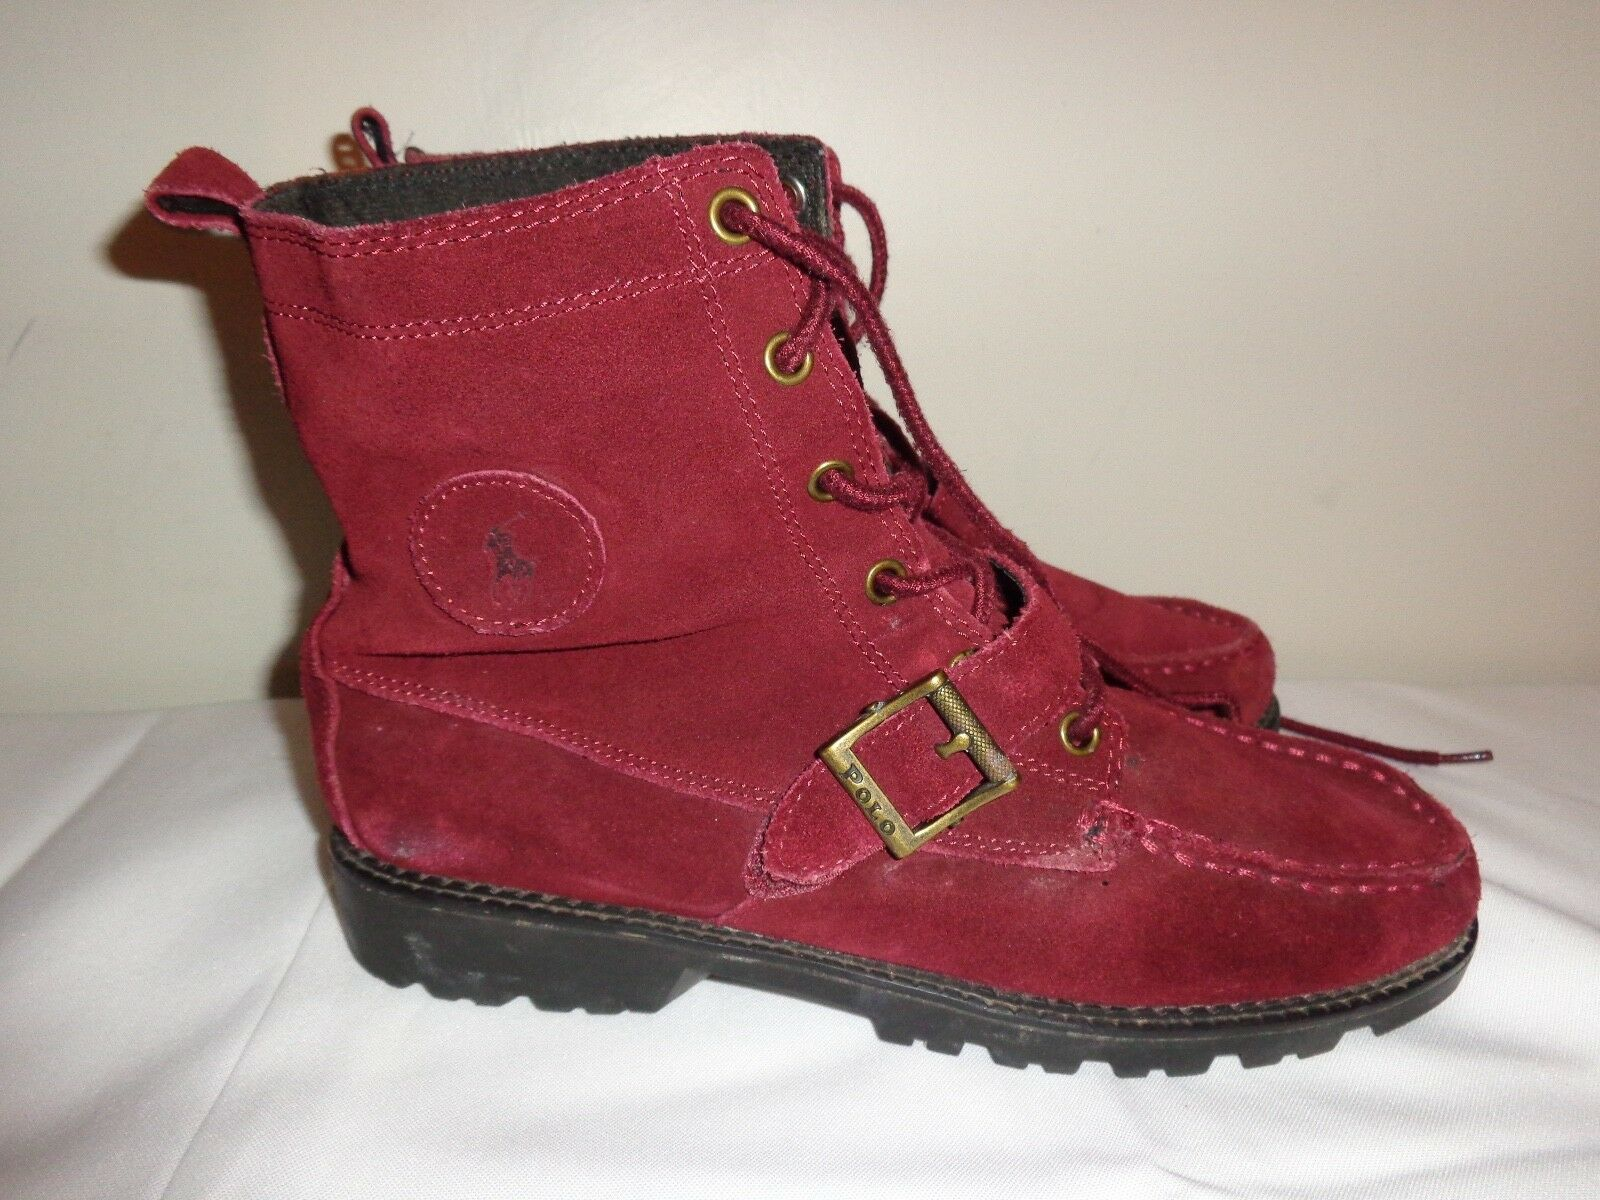 POLO RALPH LAUREN RANGER burgundy SUEDE LEATHER BUCKLE BOOTS Sz 9